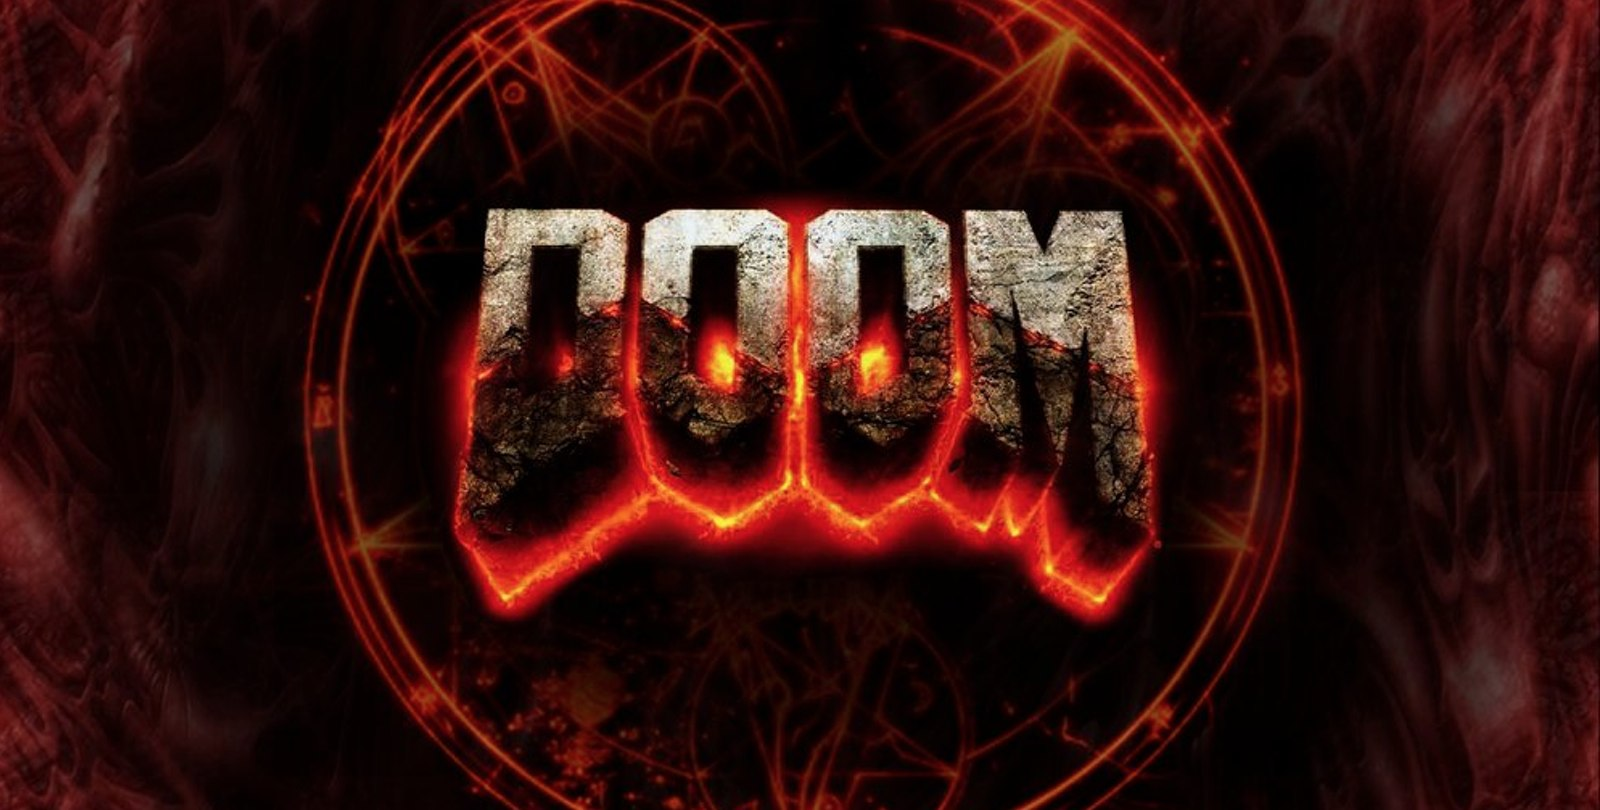 Vamers-FYI-Gaming-New-DOOM-Teased-at-E3-ahead-of-QuakeCon-2014-Banner.jpg